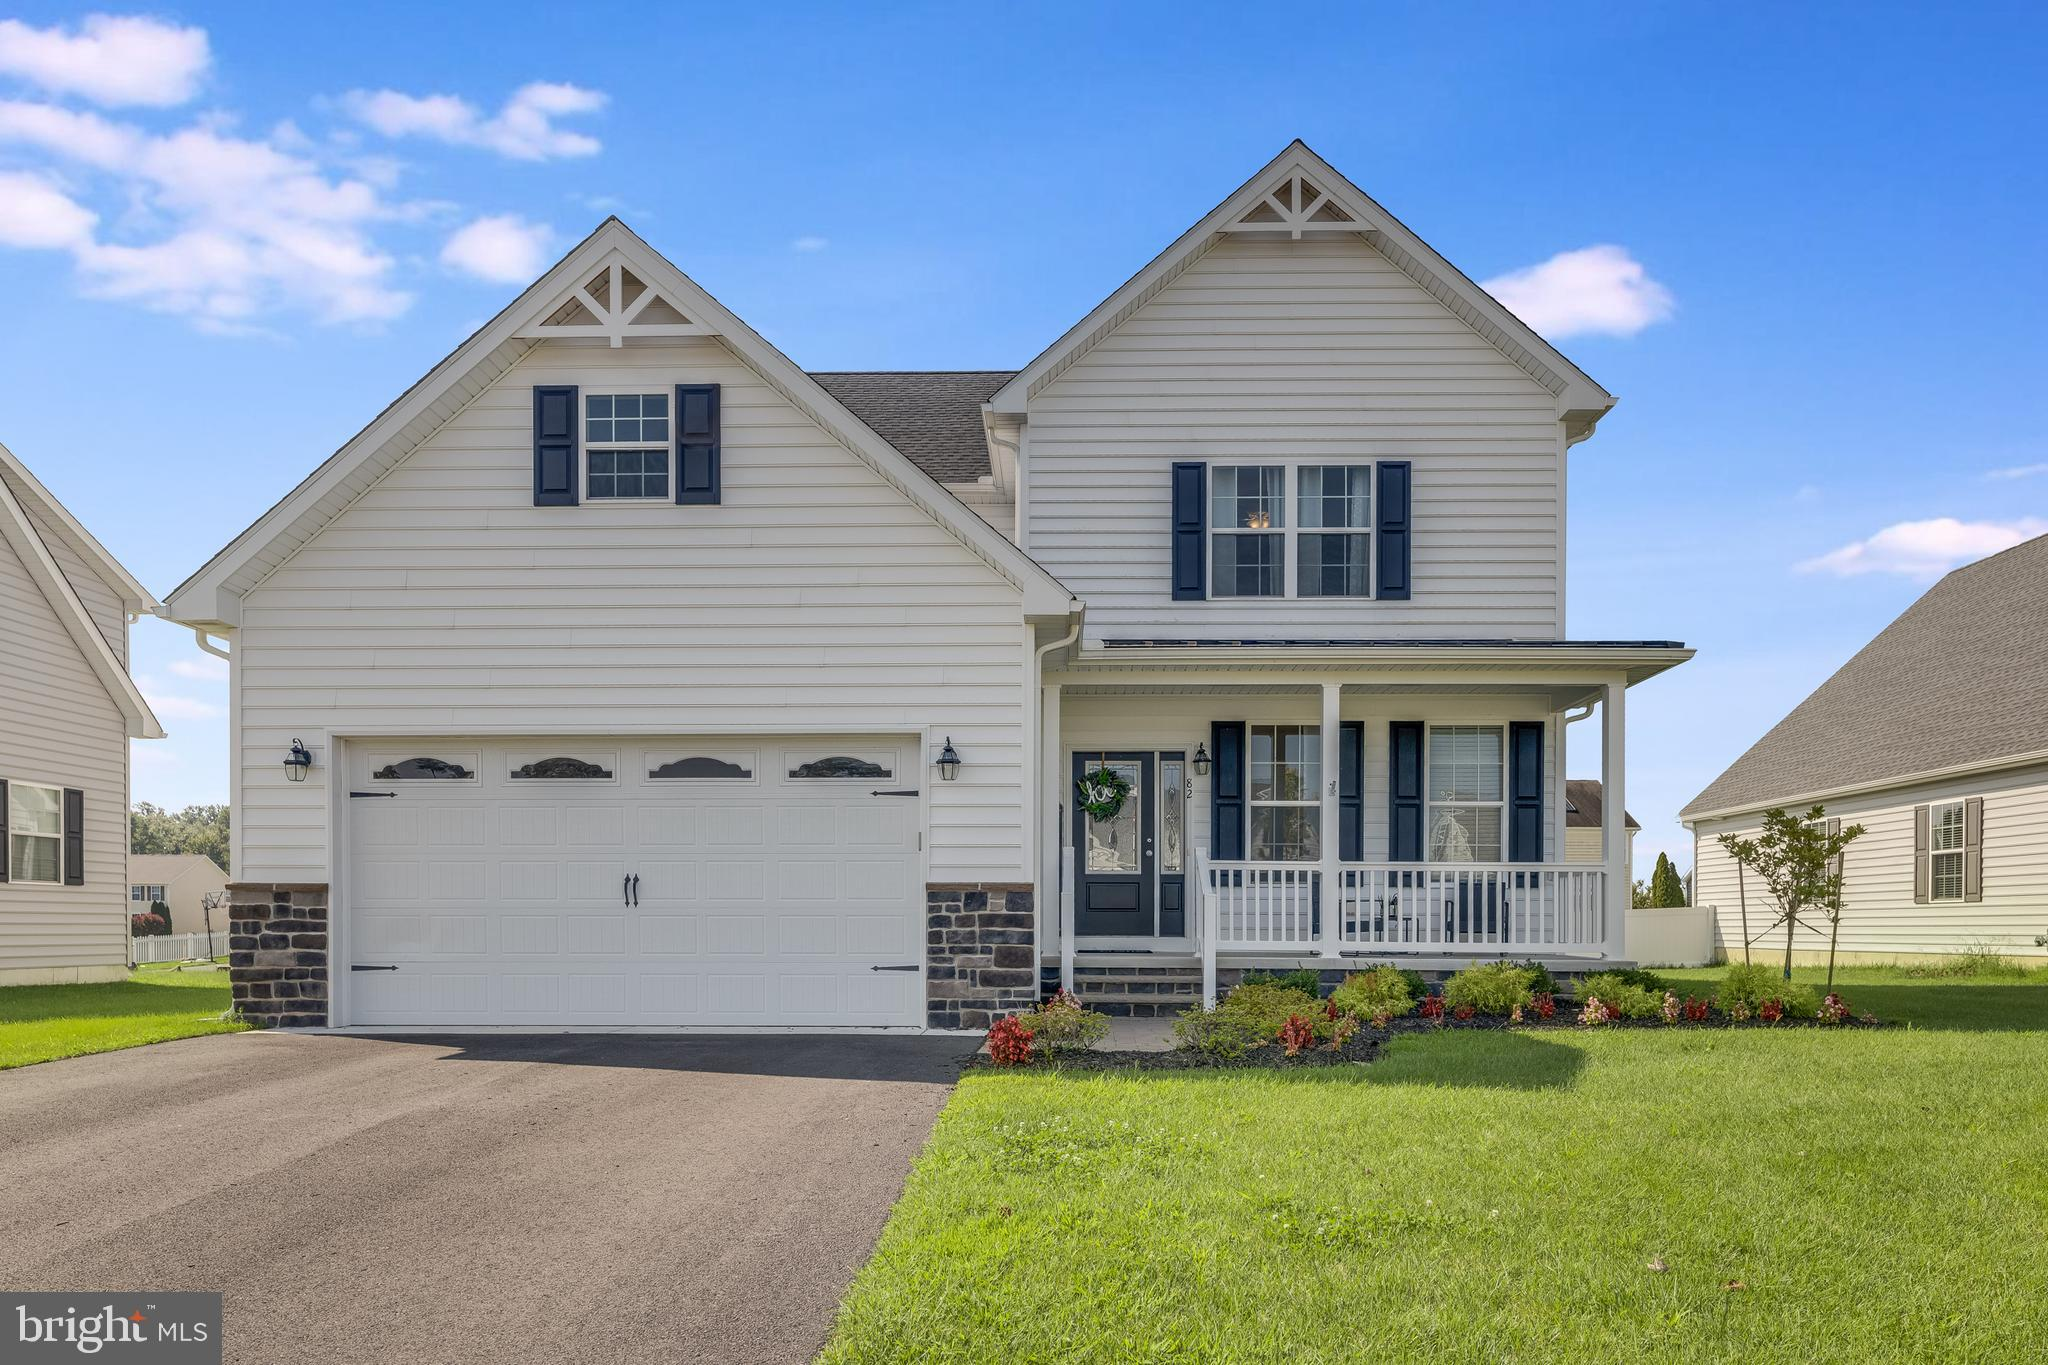 $10,000 in settlement assistance from the builder!!Spacious 2 story home. This model features the Master bedroom on the first floor with a walk in closet, spacious bathroom with a fiberglass shower and private toilet and double sink vanity. Unfinished attic space above the garage and unfinished storage upstairs as well. Laundry room located on first floor with a beautiful granite top laundry sink. Some features in this home include 9ft ceilings on the first floor, 42 inch cabinets in kitchen, granite counter tops, stainless steel appliances and more! Please call to schedule a showing today! This house is under construction will be ready in 90 days,  this house does not have a big back yard more front and side yard. * no appraisal contingency. PHOTOS SHOW A PREVIOUSLY COMPLETED MODEL ***COMPLETION DATE OF 10/31/21*****